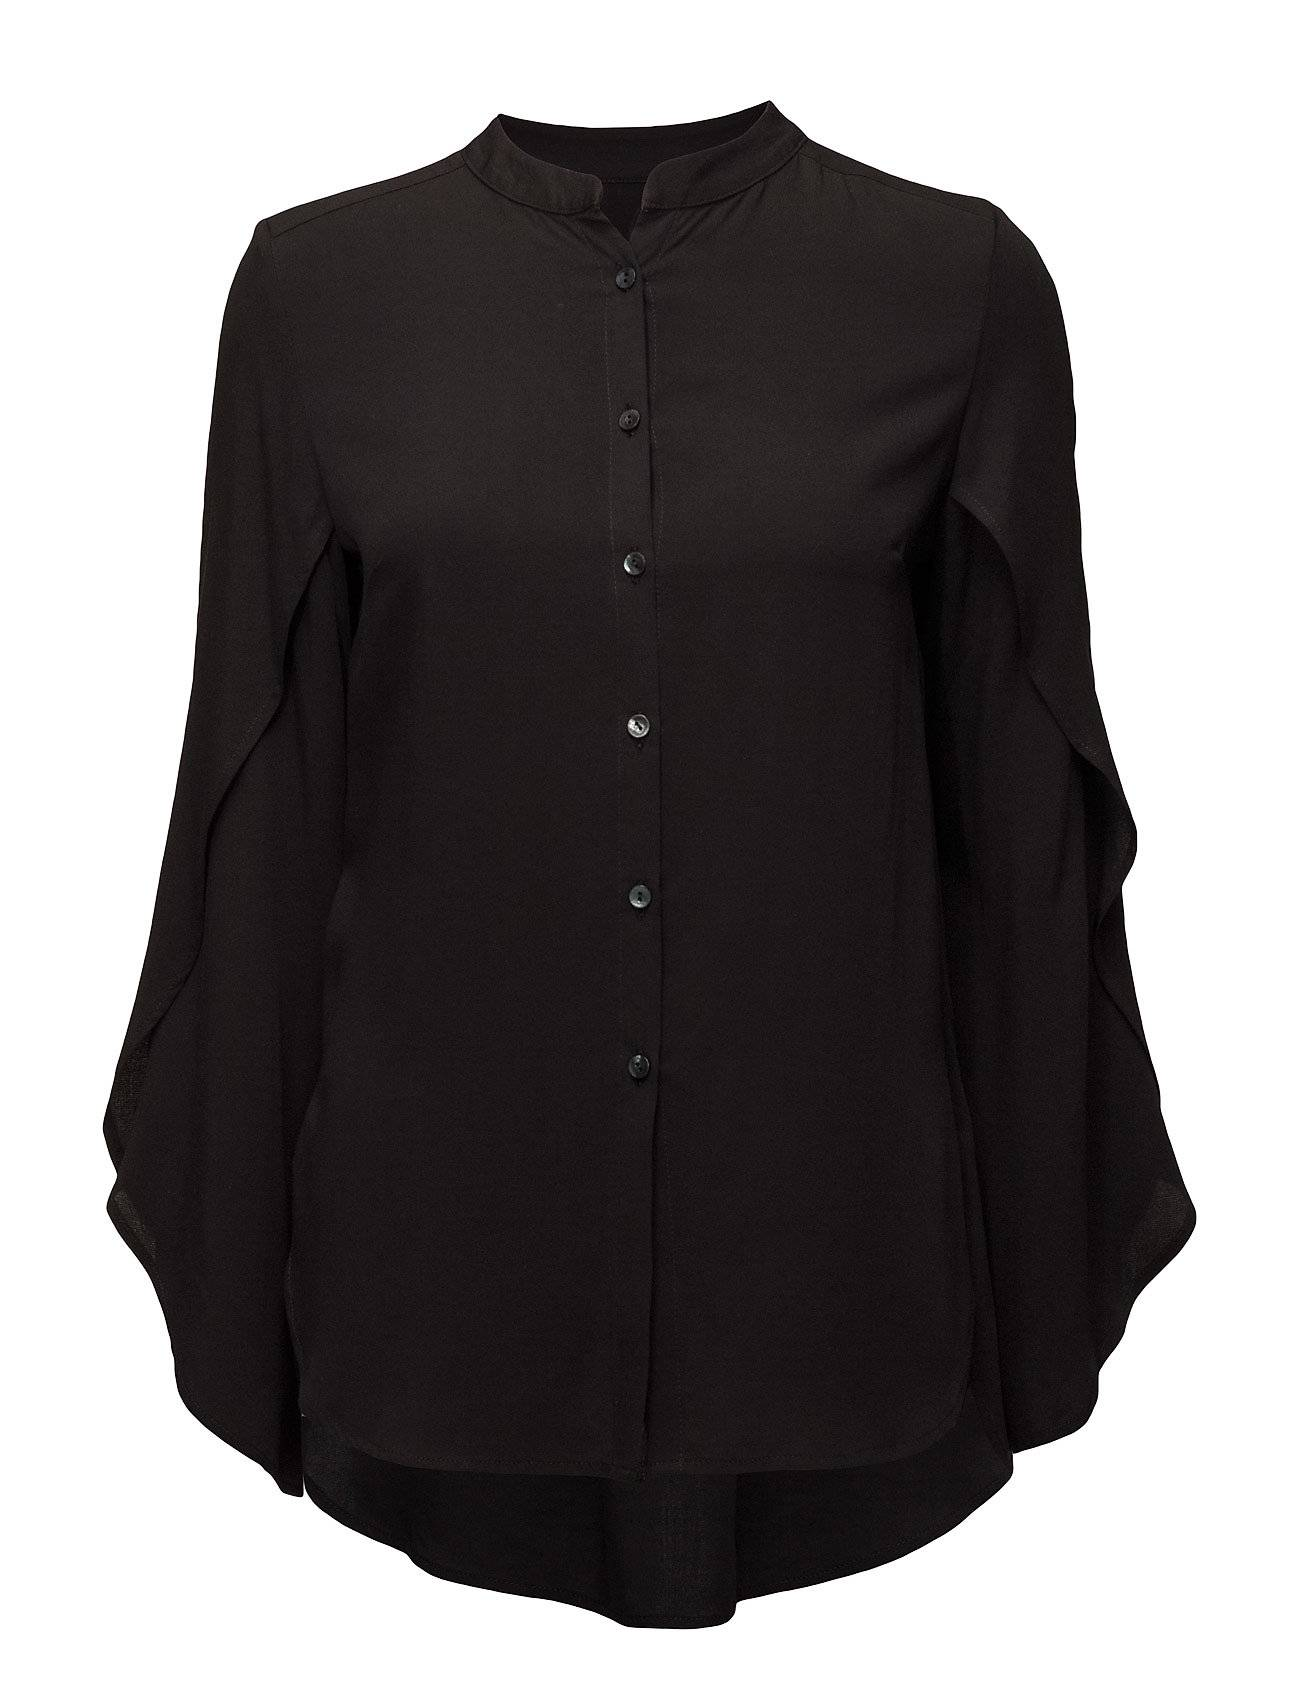 Diana Orving Tulip Blouse